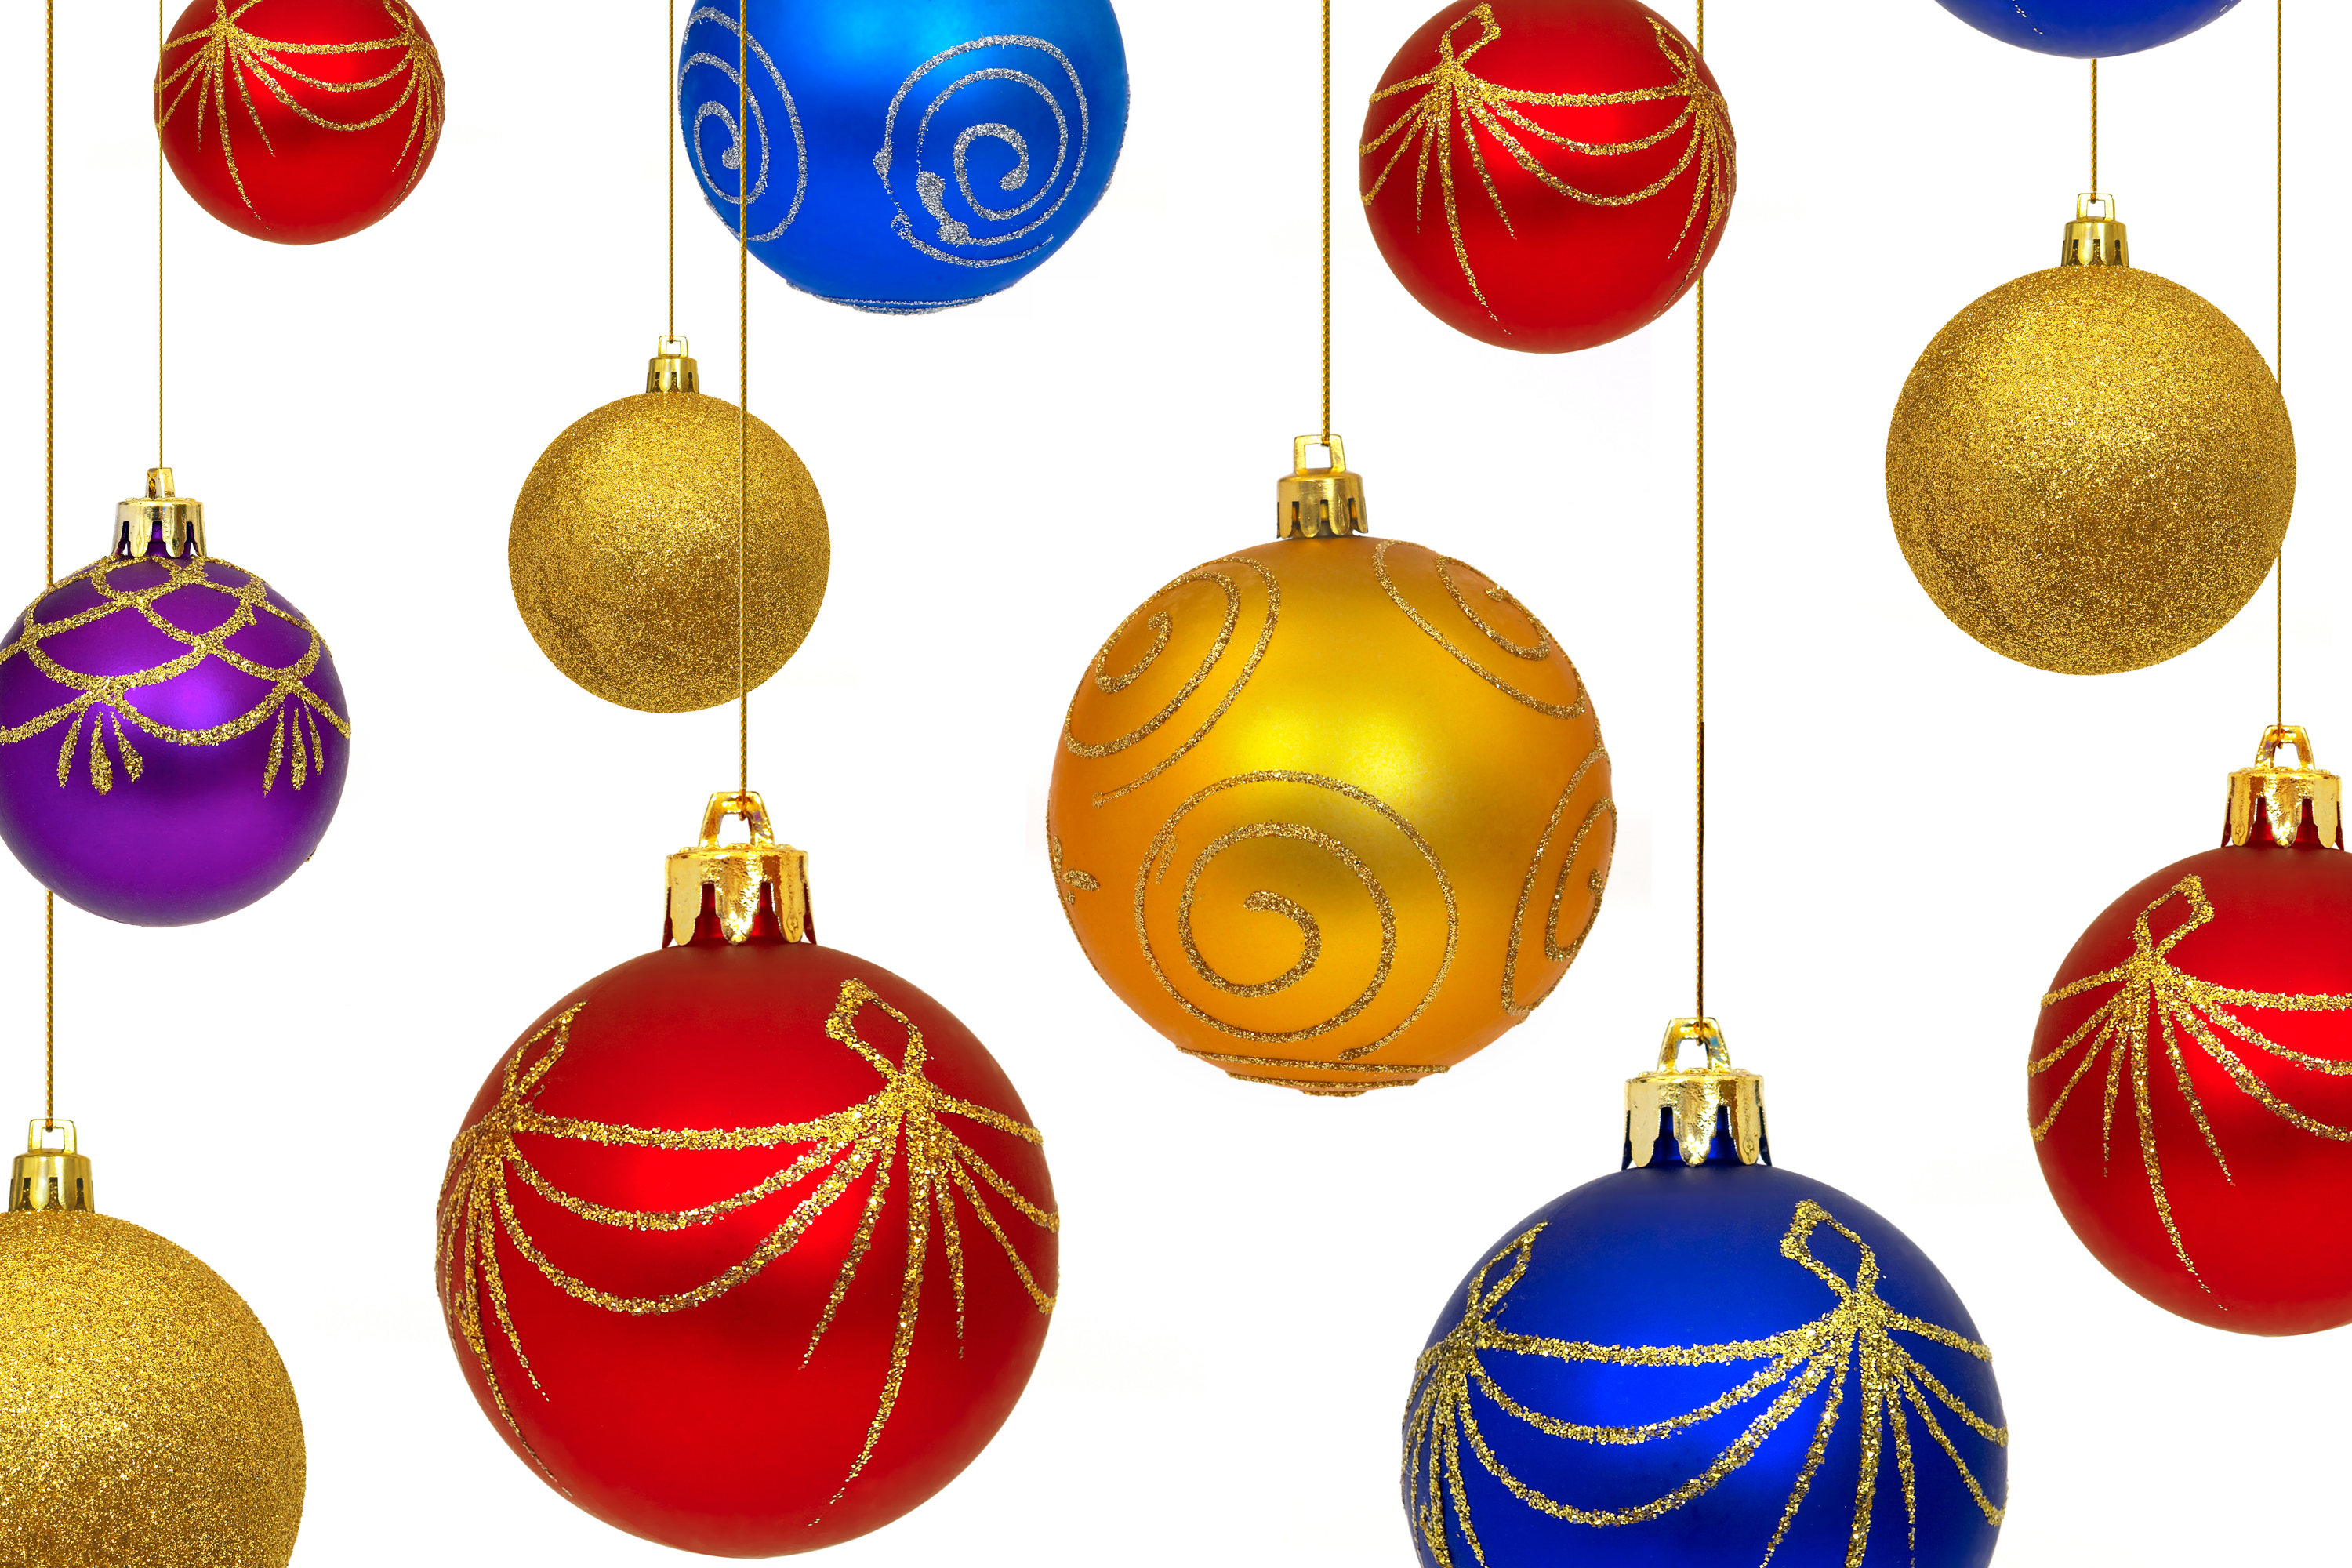 5 Random Facts You Didn't Know About Ornaments | Themocracy